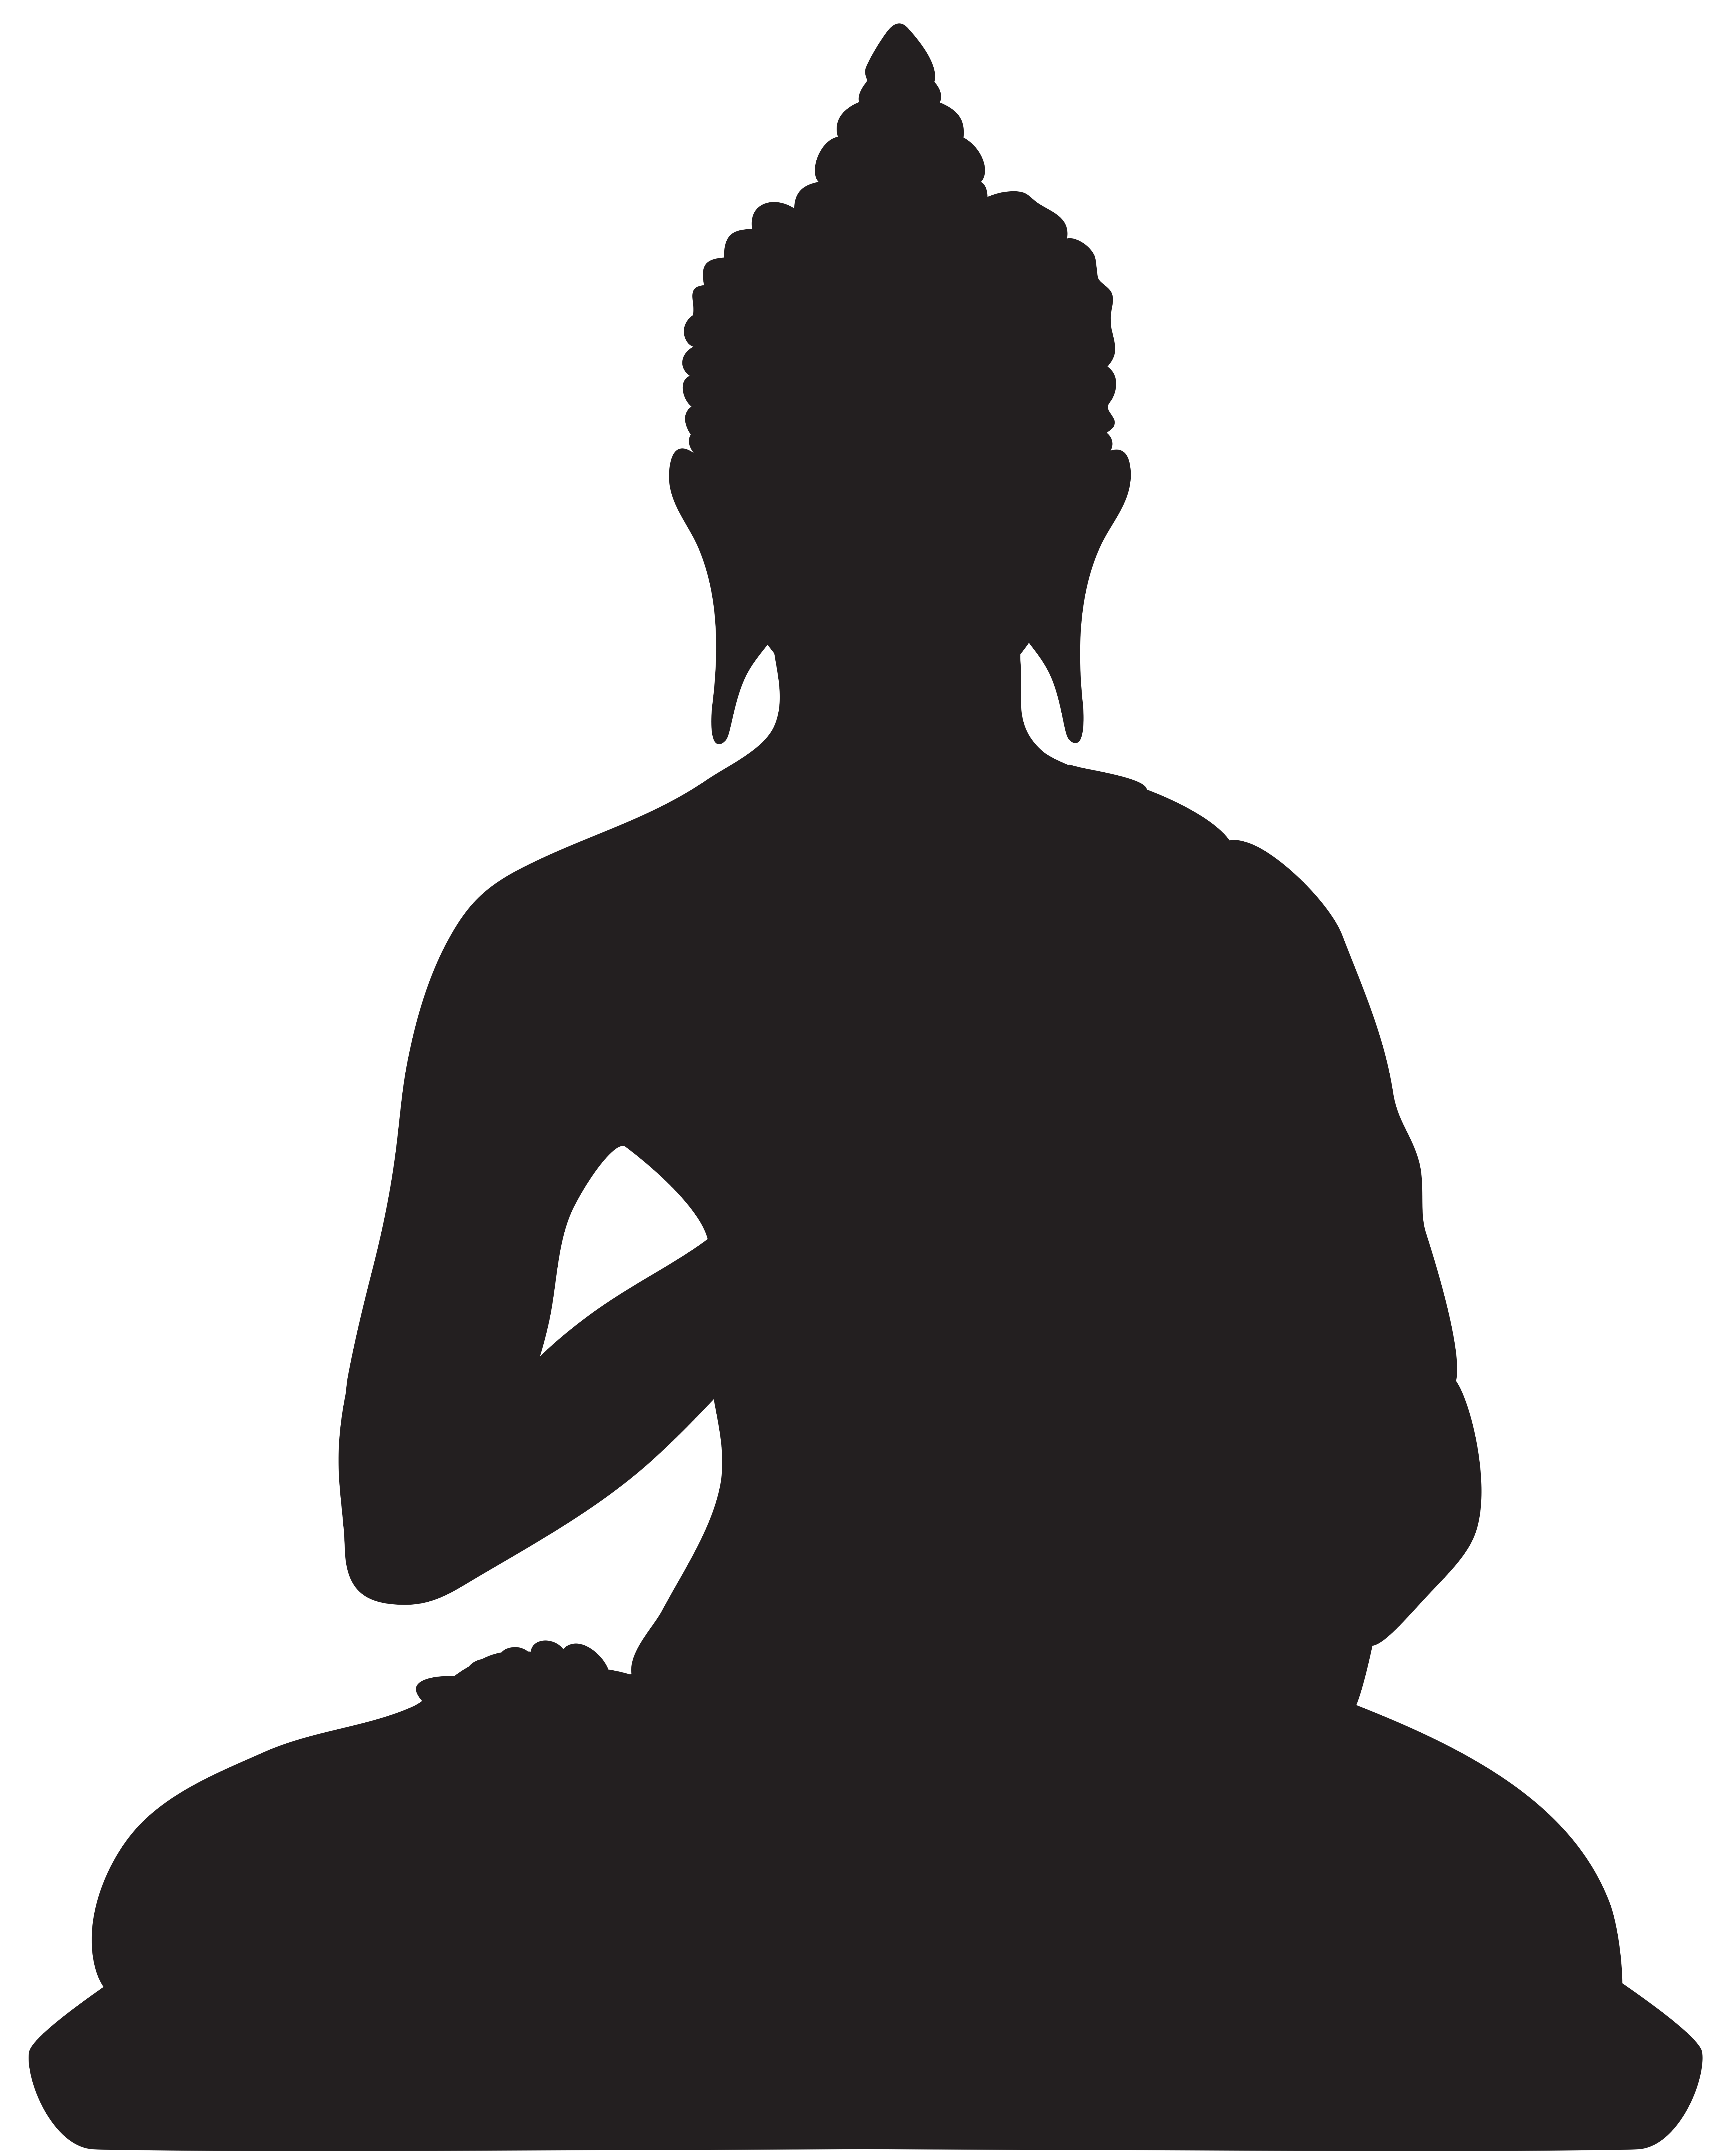 Buddha clipart sillouette. Silhouette png clip art